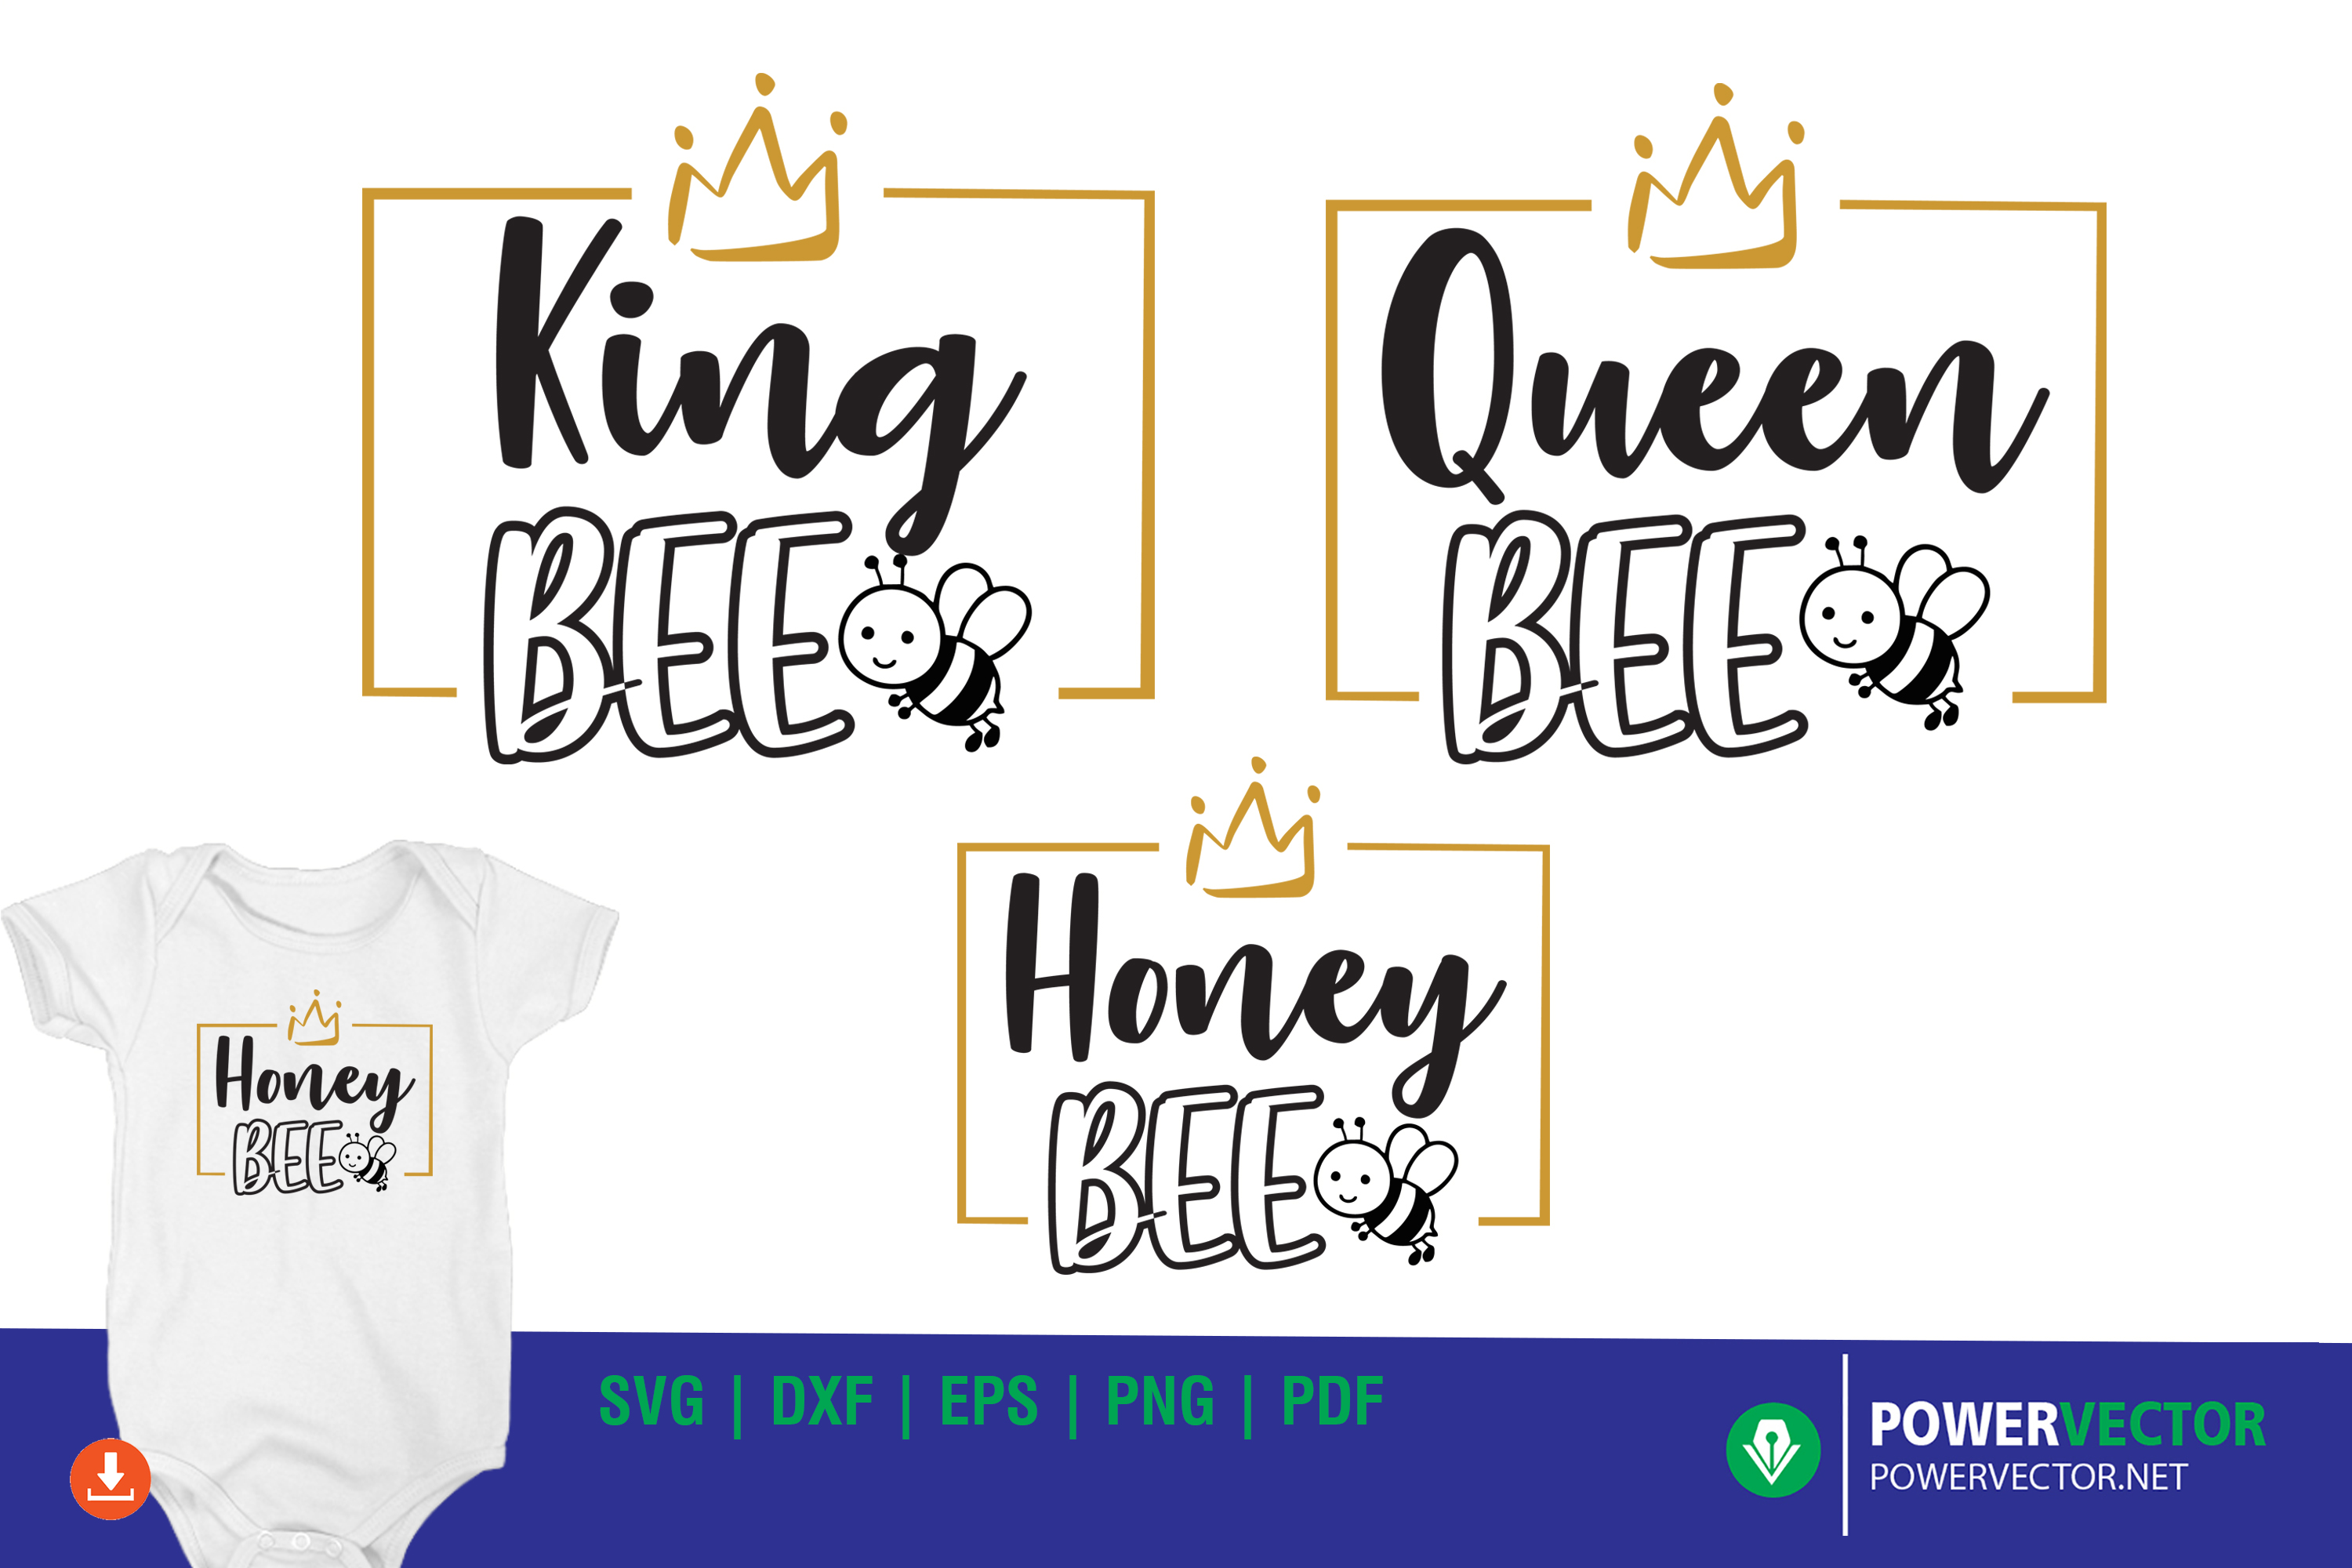 Bee Family Svg King Queen Shirt Designs Graphic By Powervector Creative Fabrica